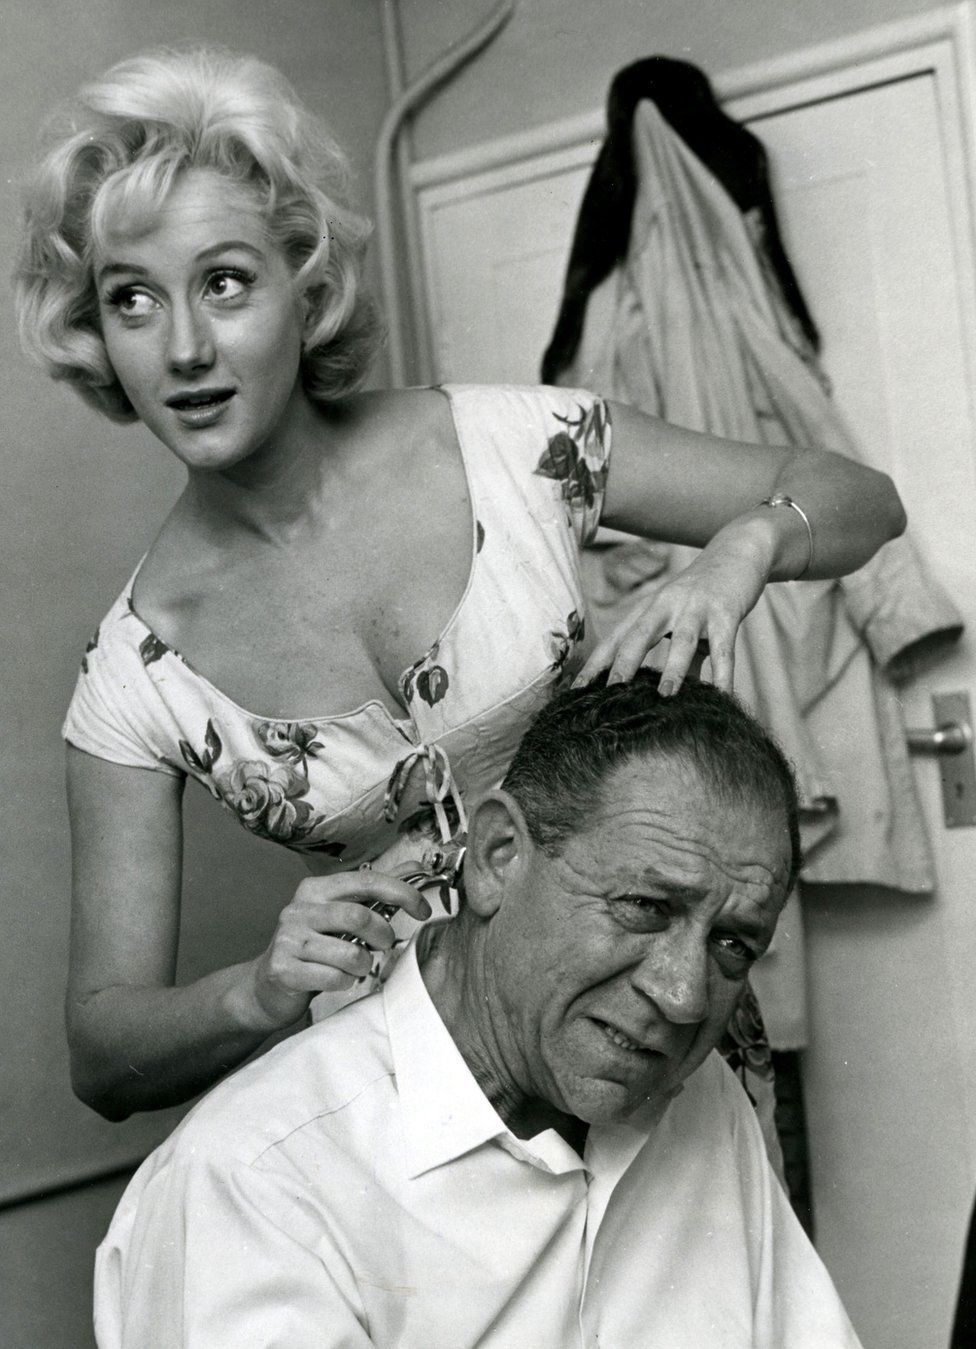 Liz Fraser taking scissors to the hair of Carry On co-star Sid James